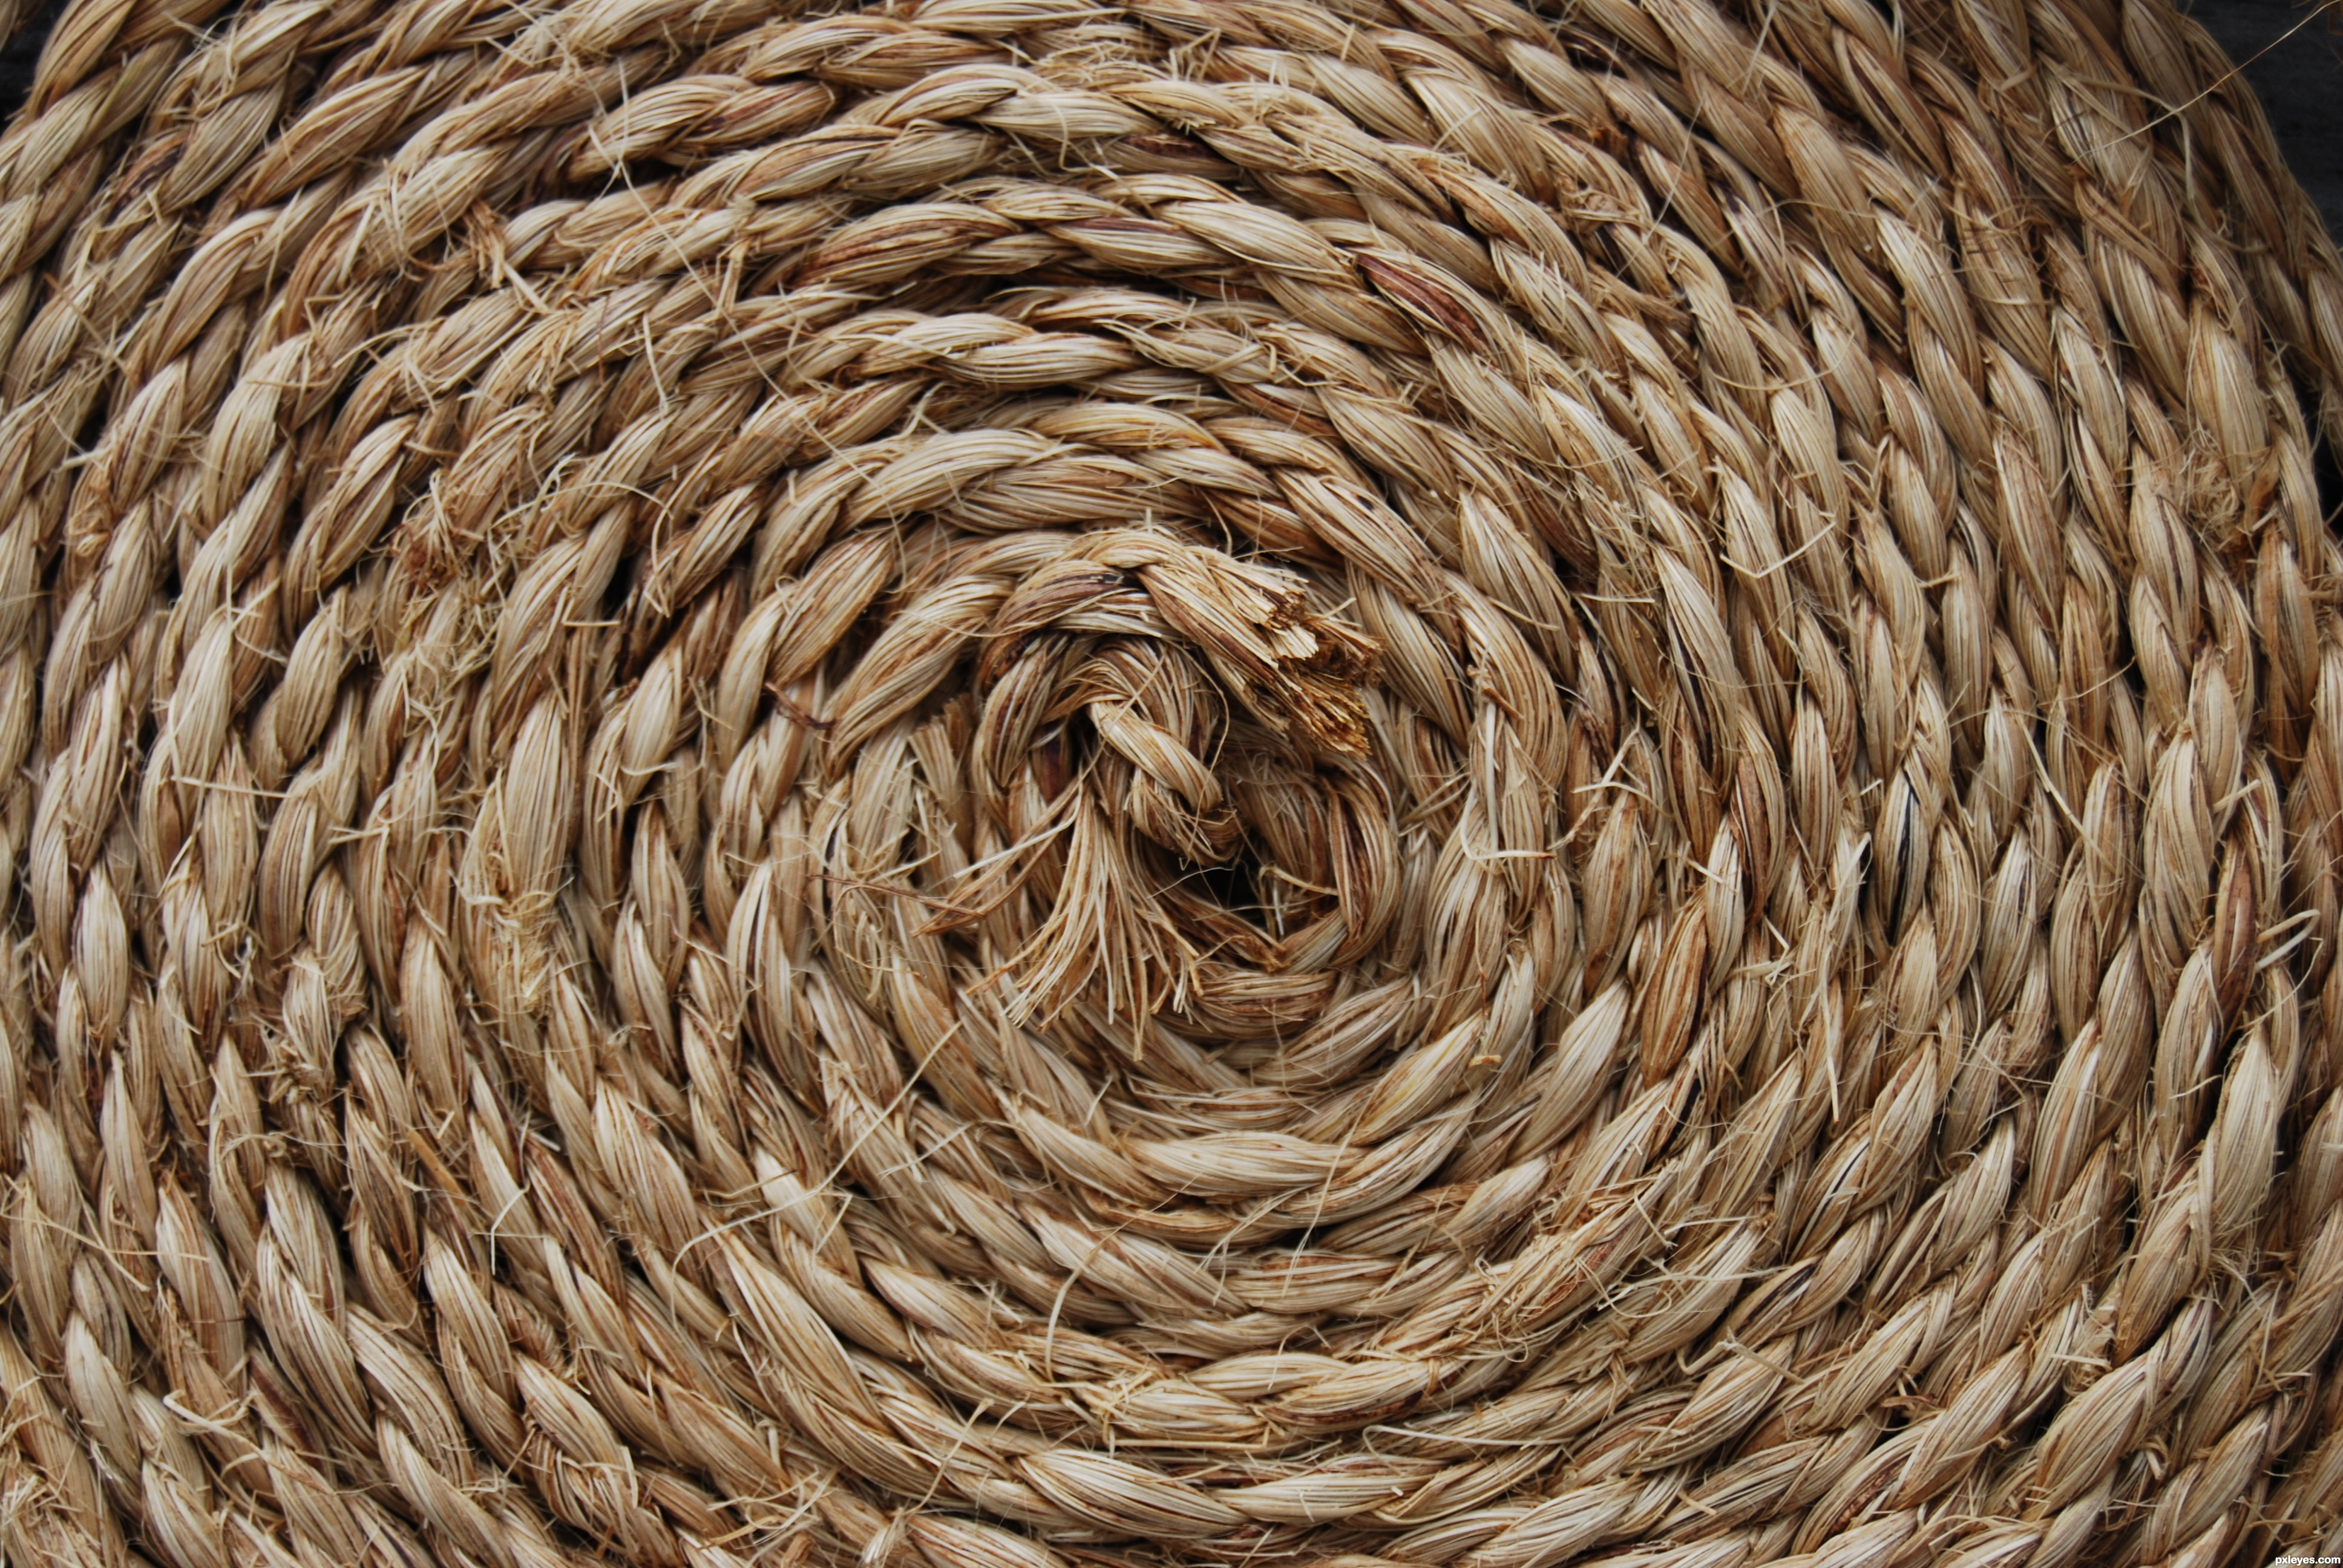 Rope Texture Photography